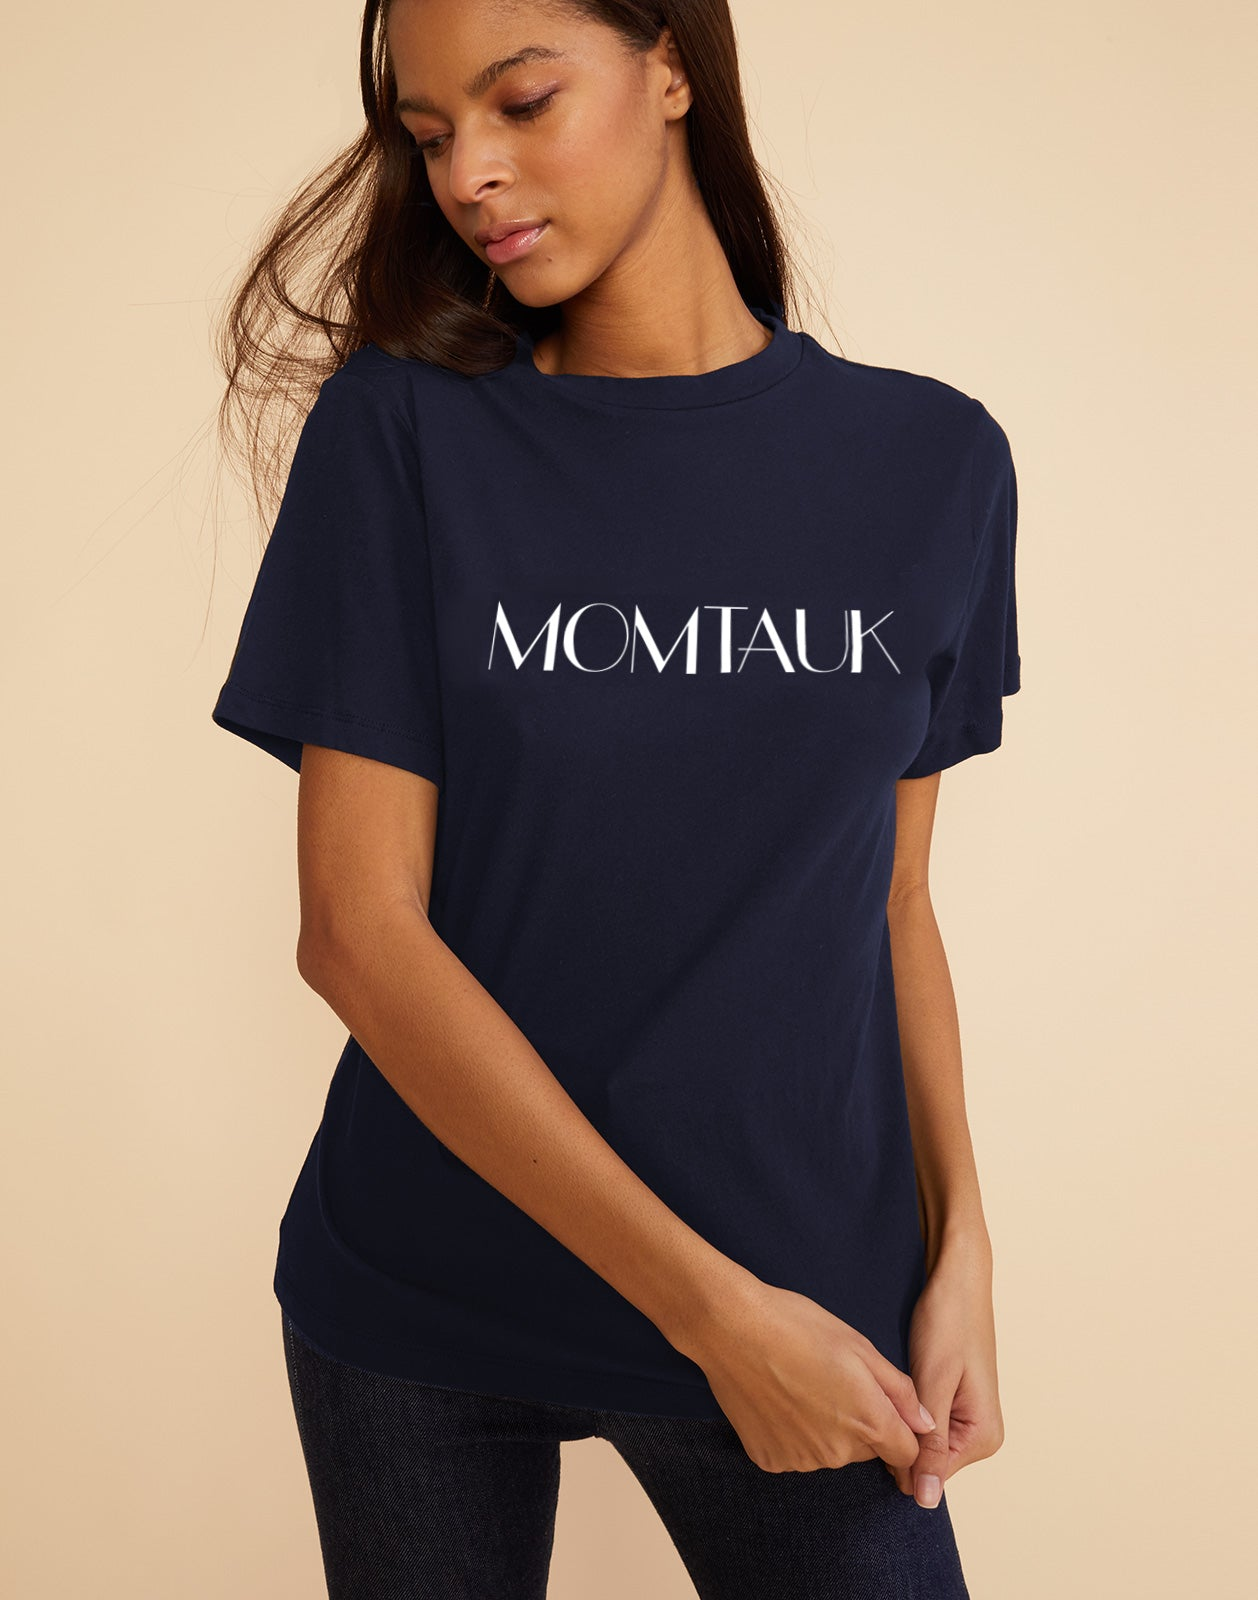 Model wearing navy cotton tee with 'momtauk' printed across the front